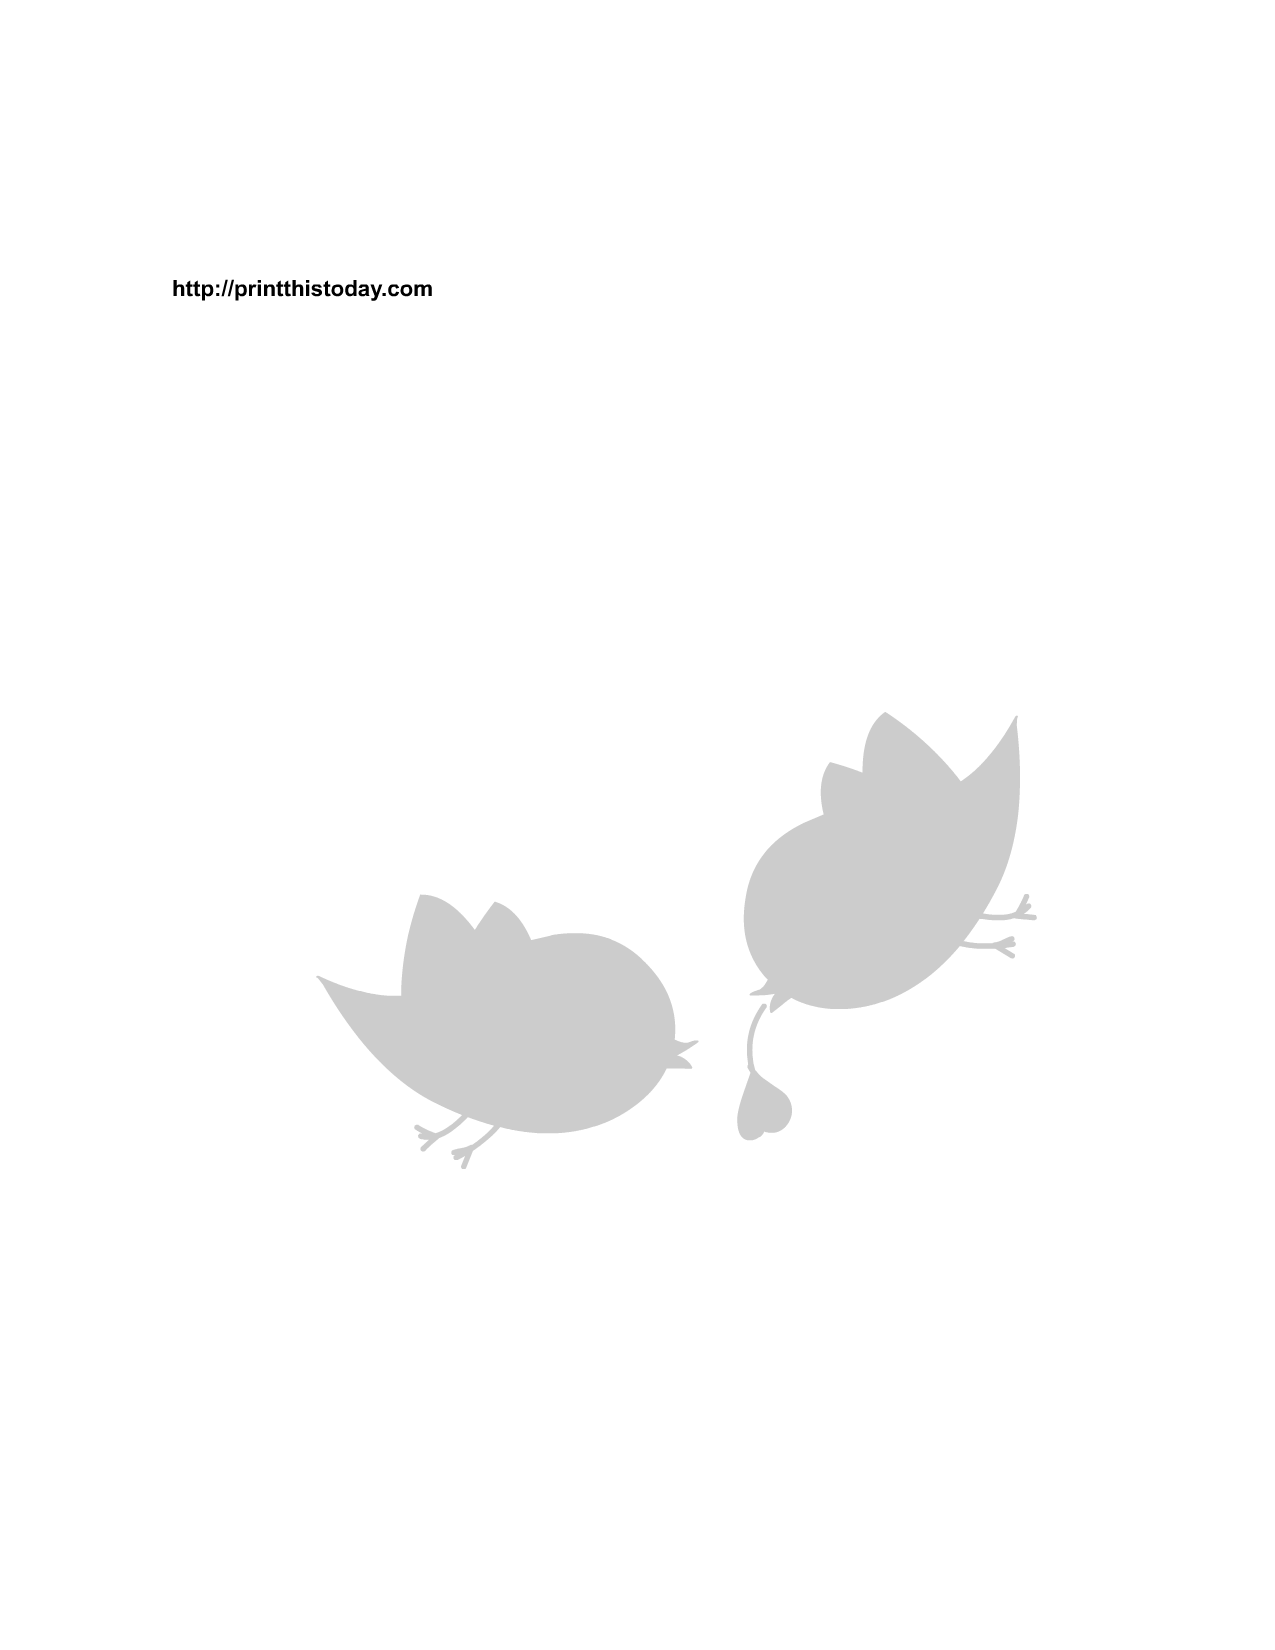 Free Printable Love Birds Stencils